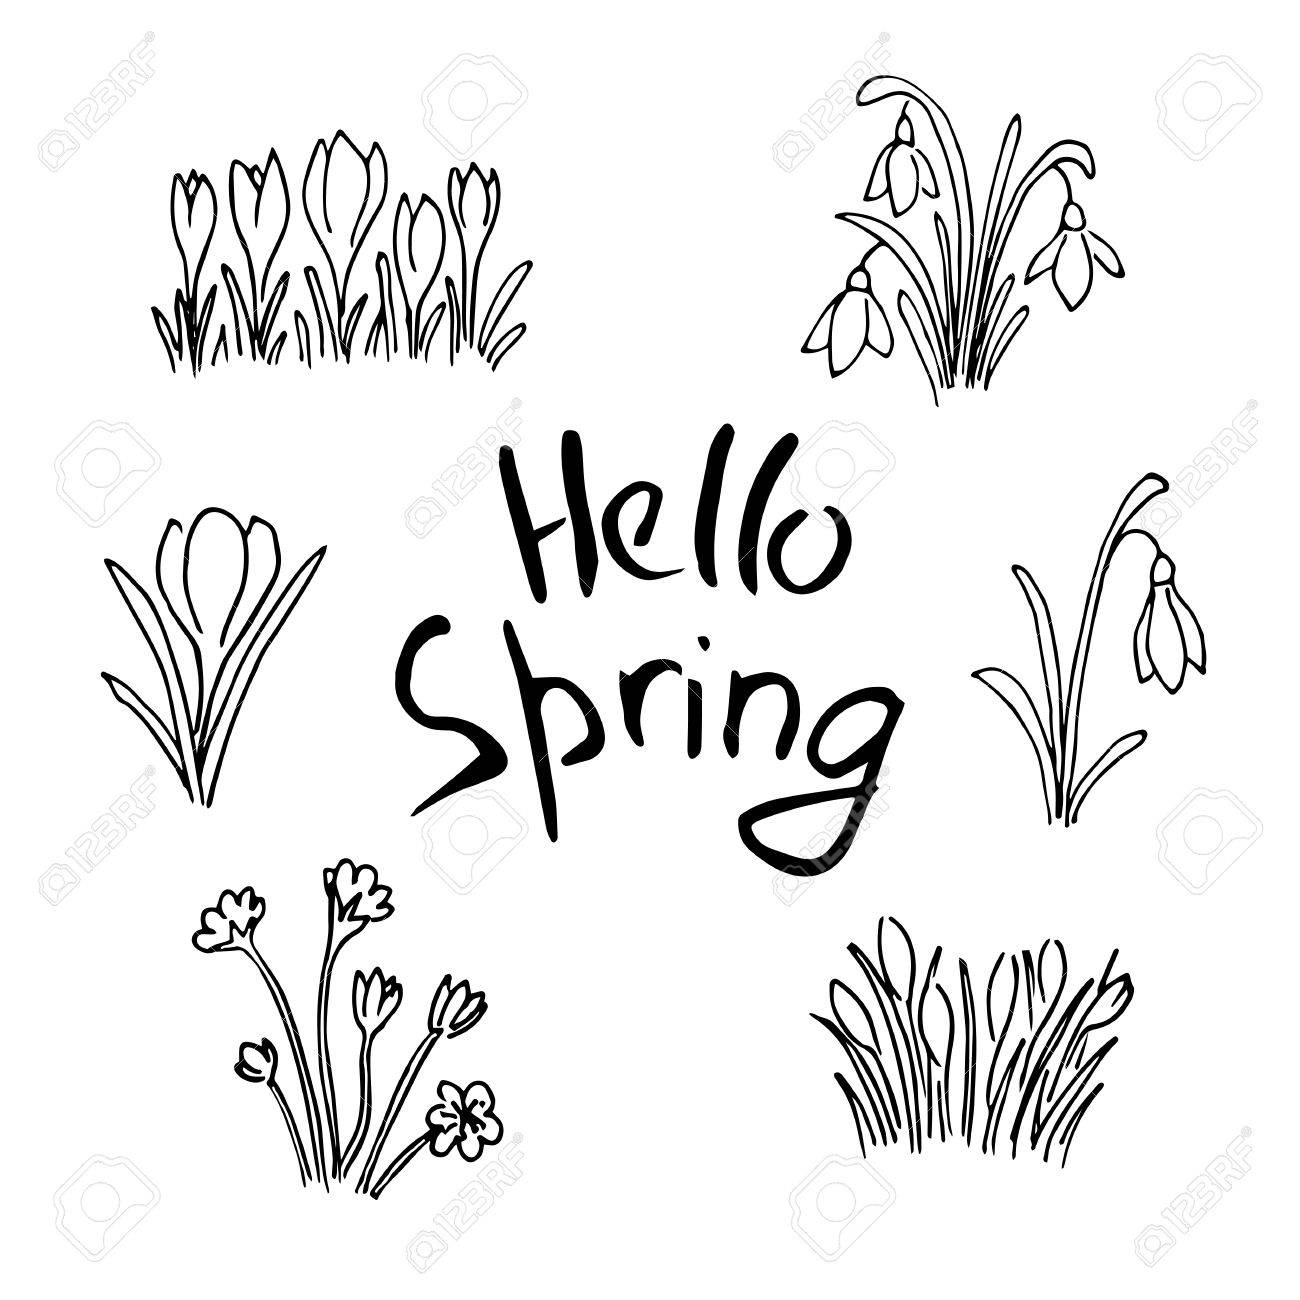 Hello Spring Sketch Set Flowers And Lettering Cute Lilac Flowers Royalty Free Cliparts Vectors And Stock Illustration Image 73106755